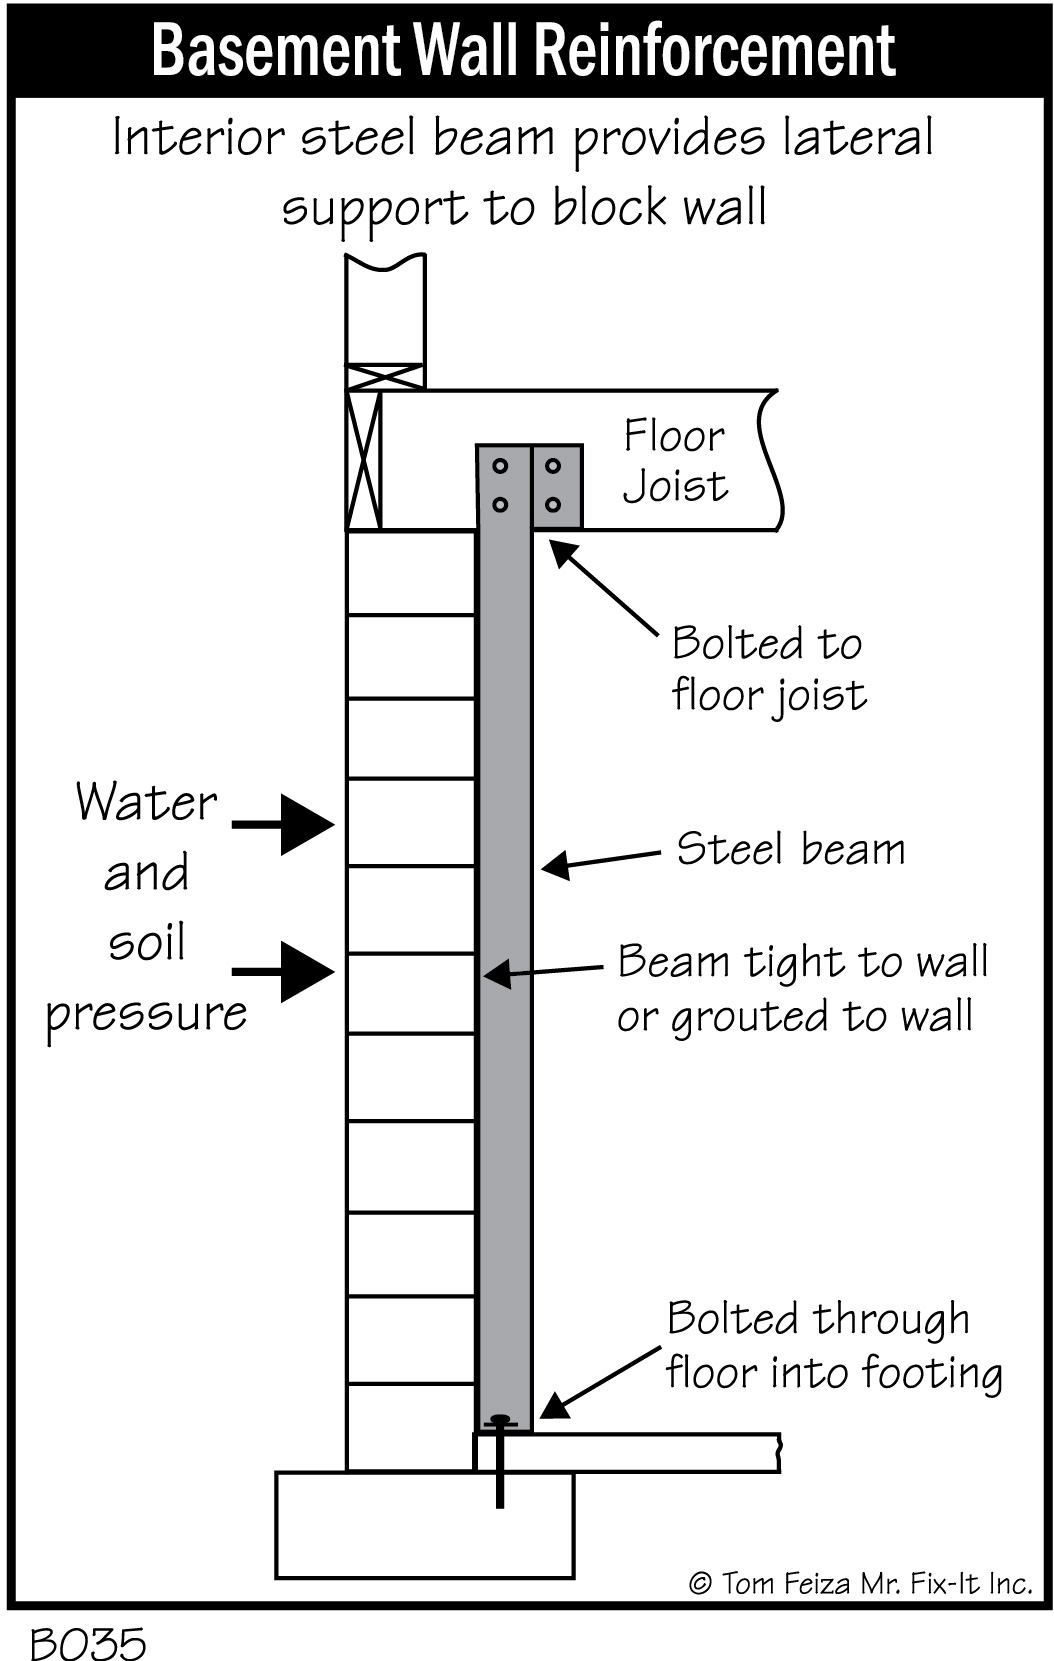 Four Benefits Of Steel Brace Wall Reinforcement For Your